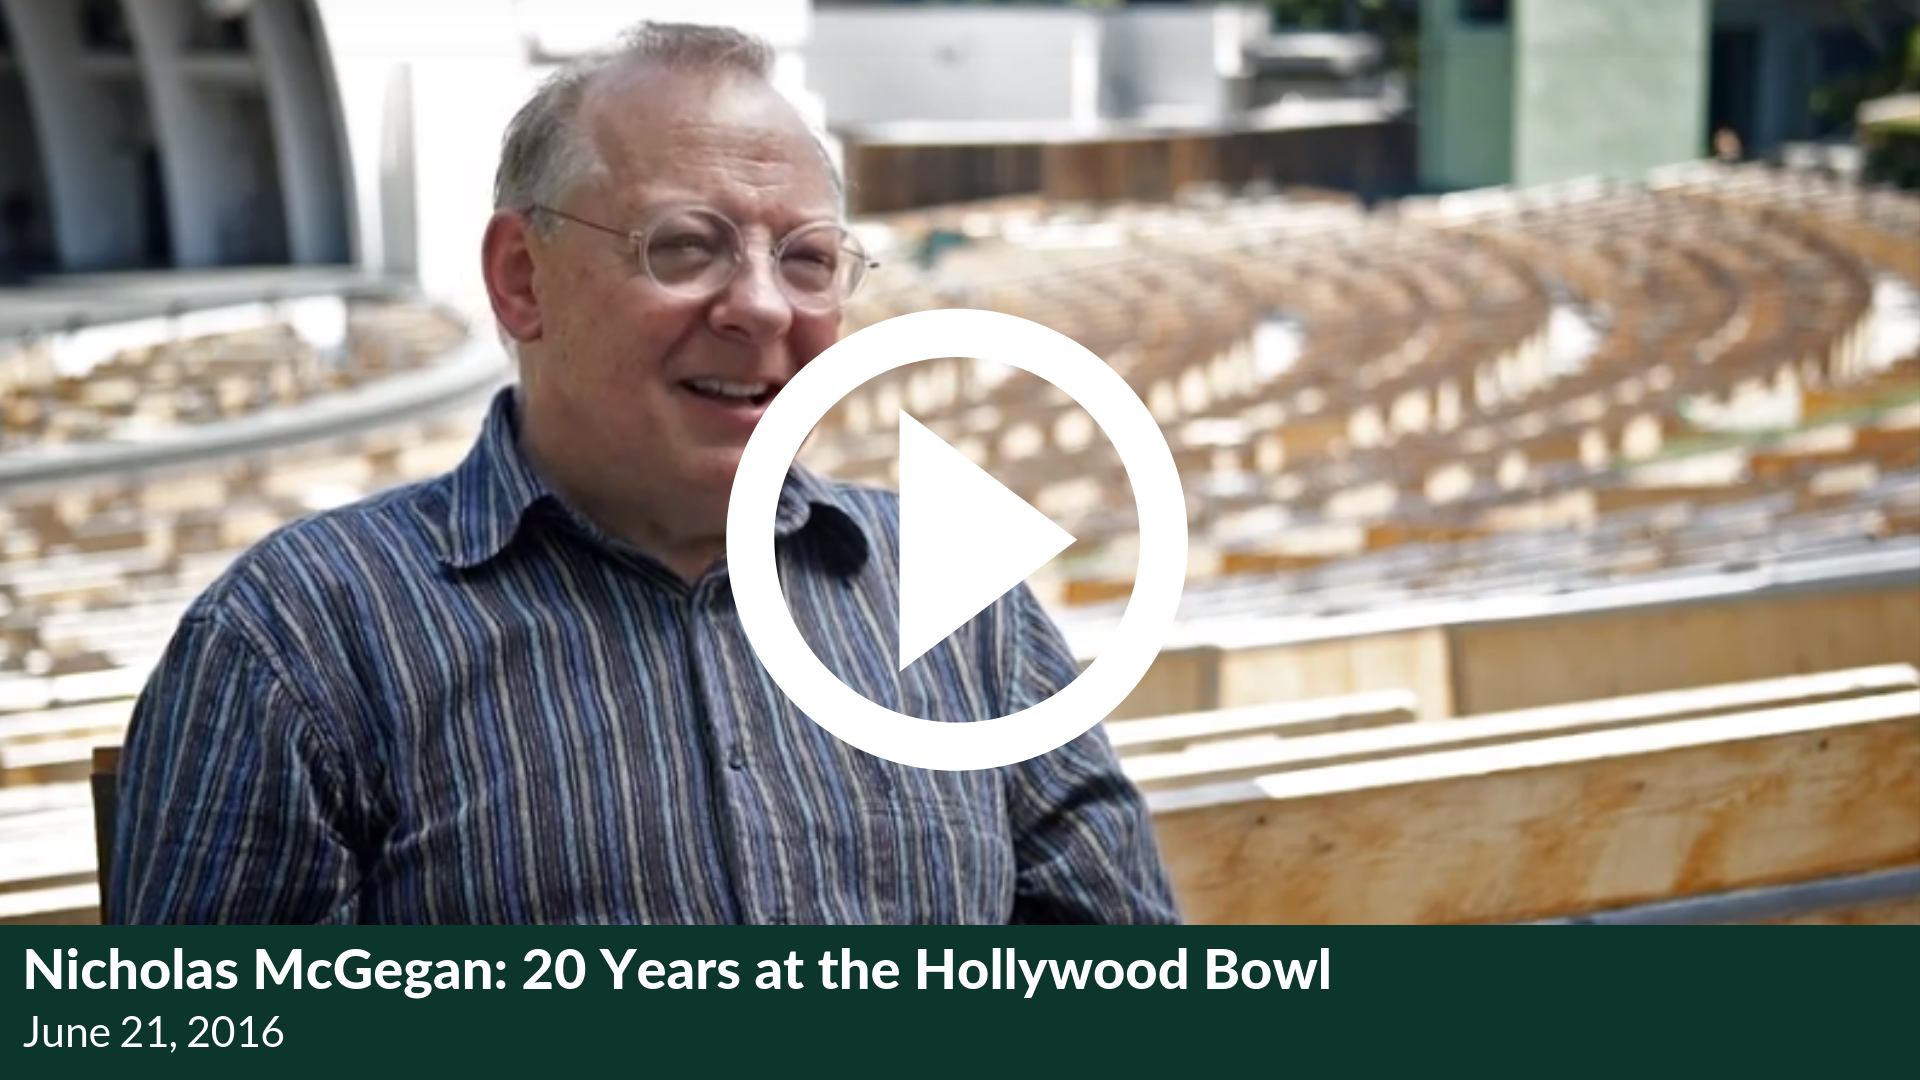 Nicholas McGegan: 20 Years at the Hollywood Bowl